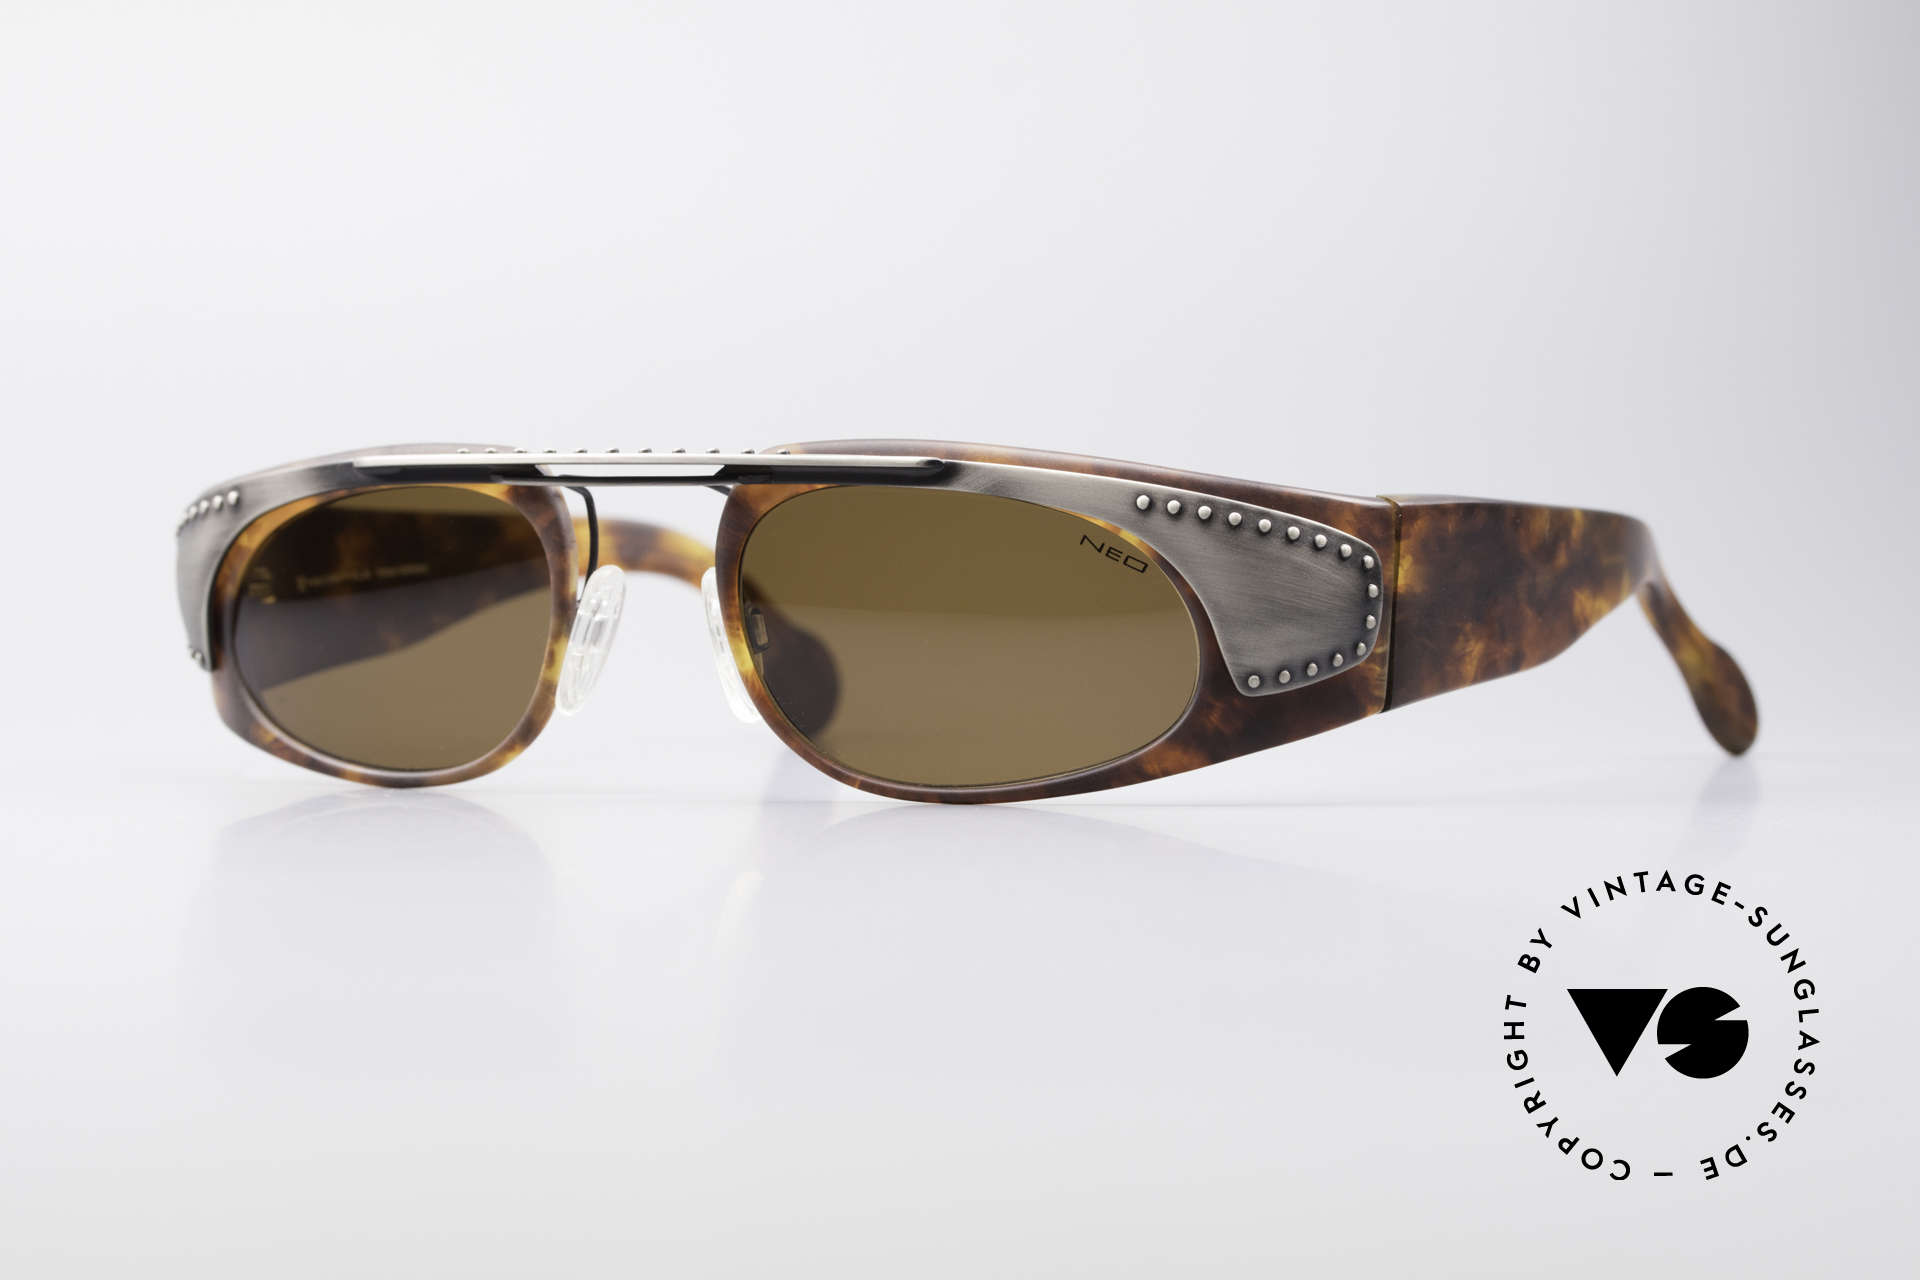 Neostyle Holiday 2002 Vintage Steampunk Sunglasses, extraordinary NEOSTYLE sunglasses from the 90's, Made for Men